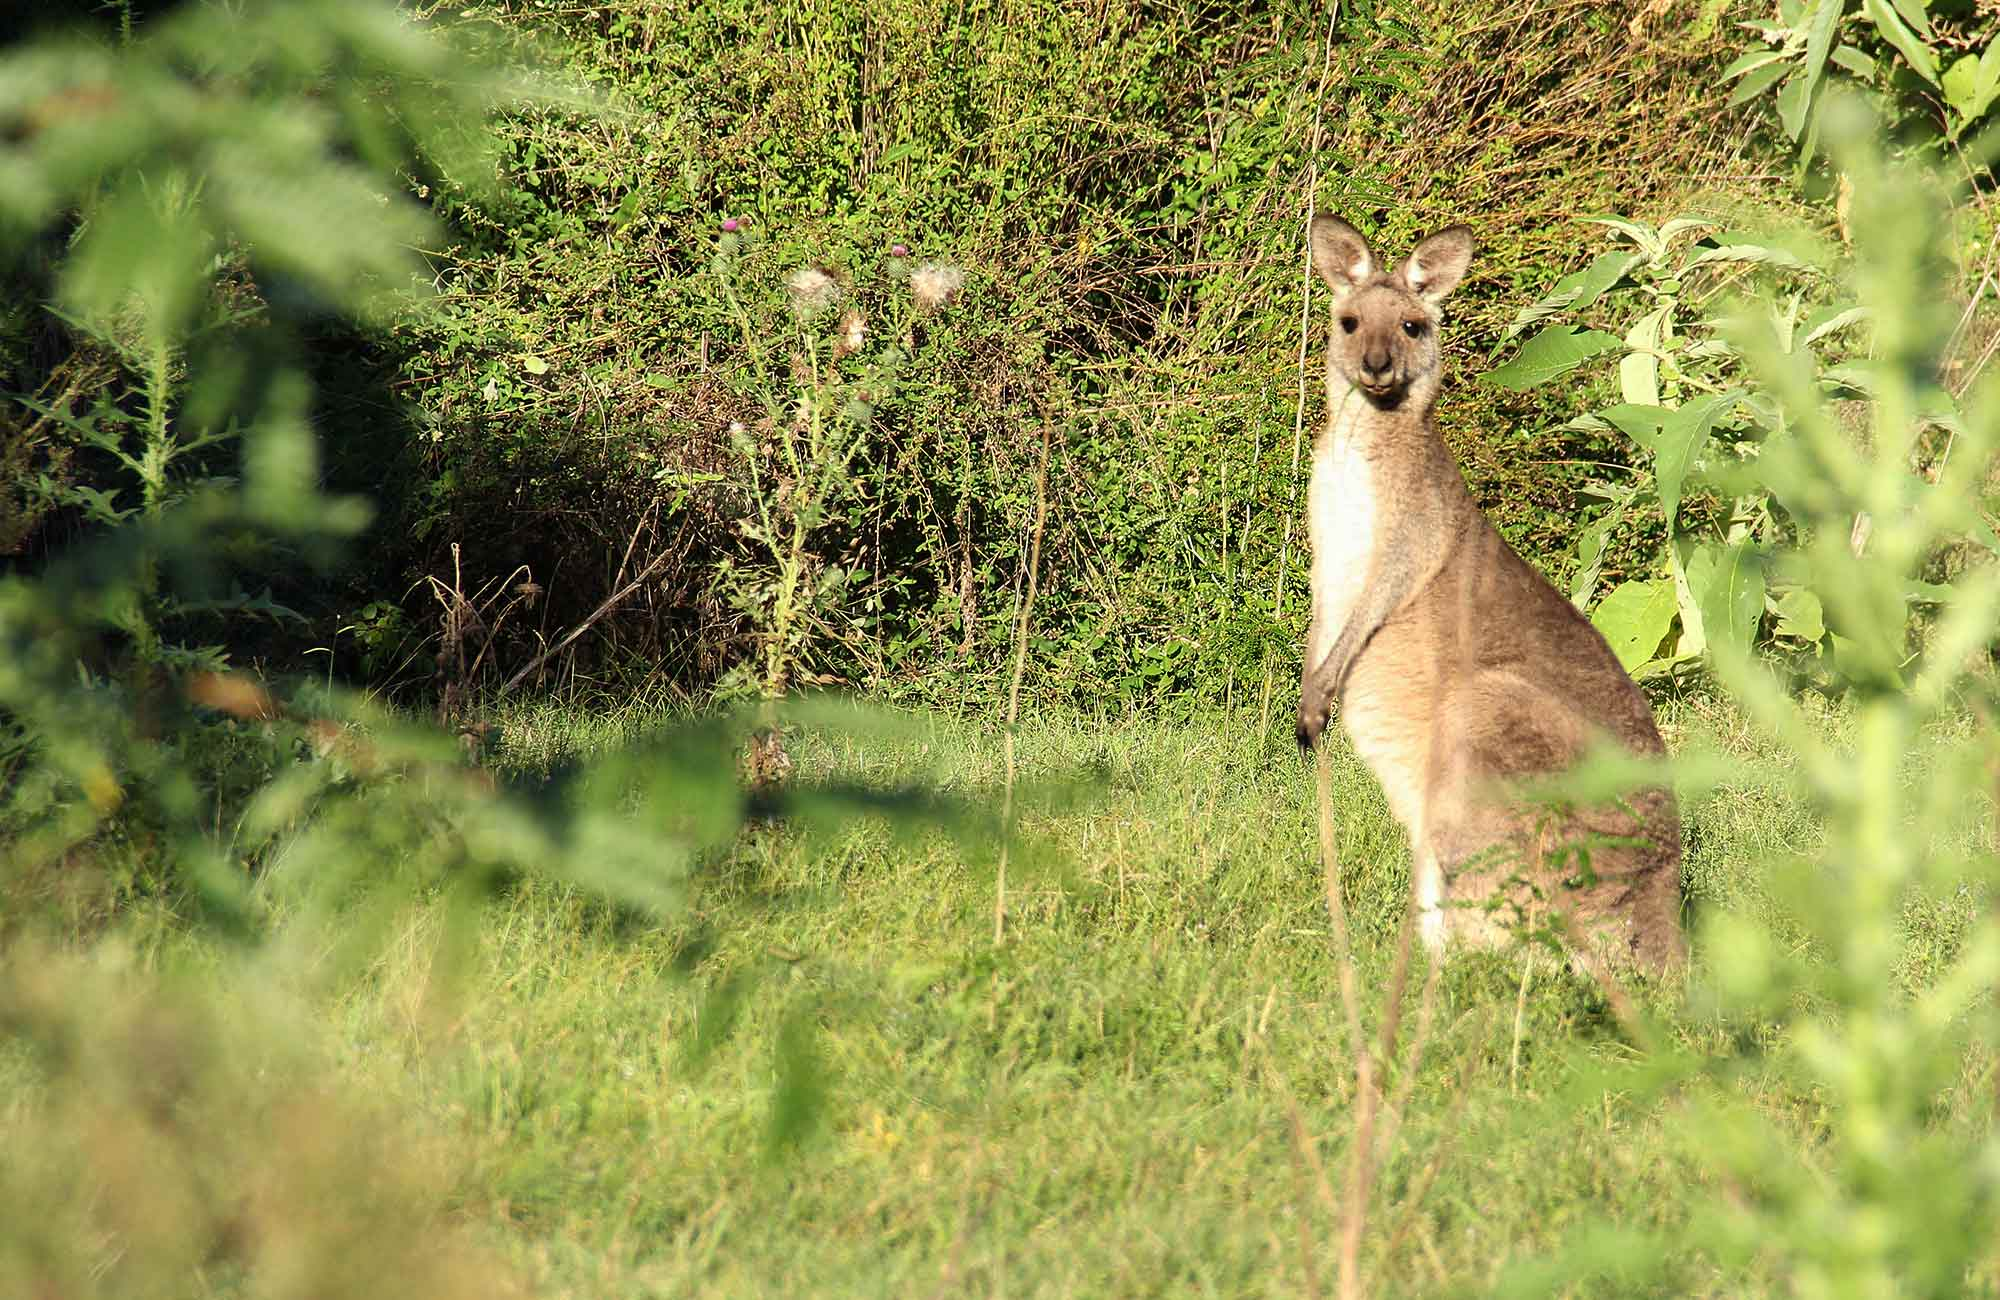 Kangaroo. Photo: John Yurasek